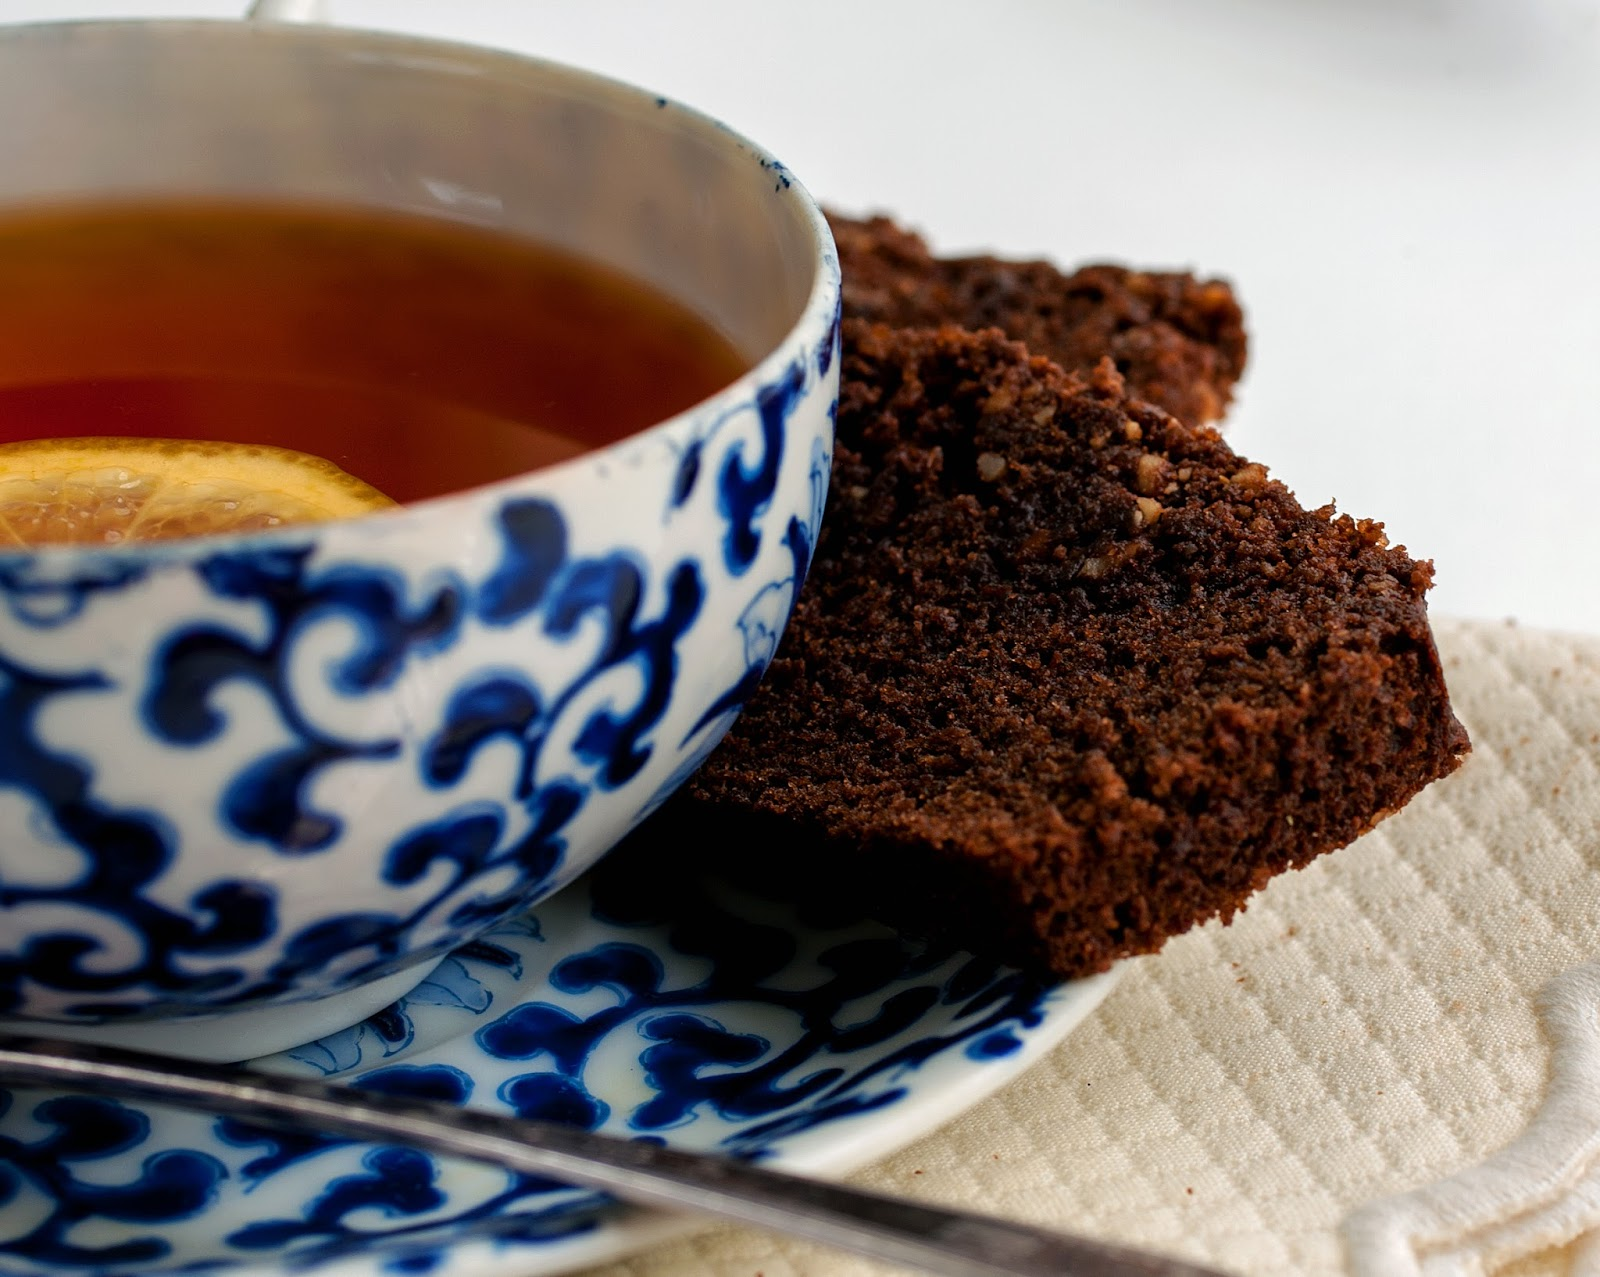 Tish Boyle Sweet Dreams: Donald Wressell's Sinful Chocolate Pound Cake